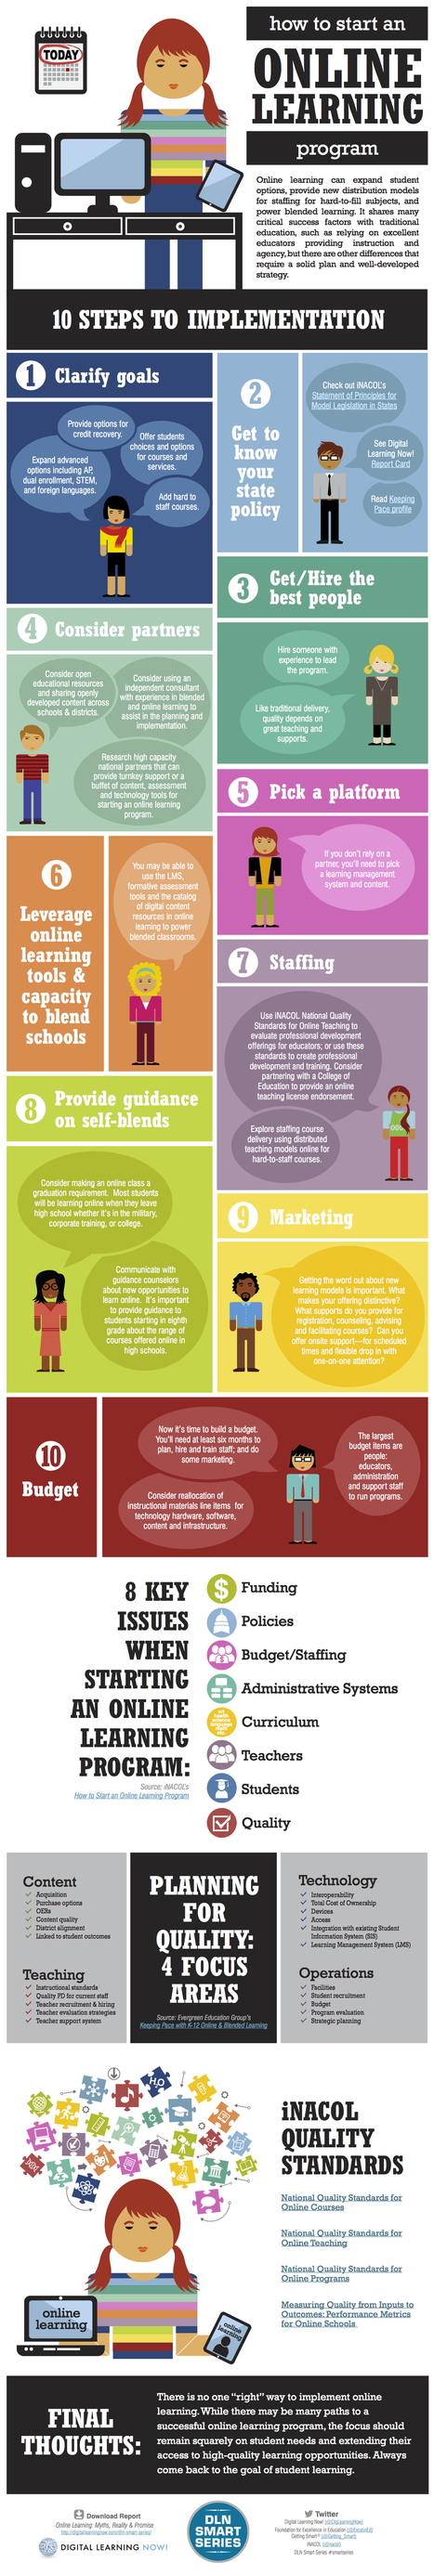 How To Start An Online Program Infographic | e-Learning Infographics | Wiki_Universe | Scoop.it